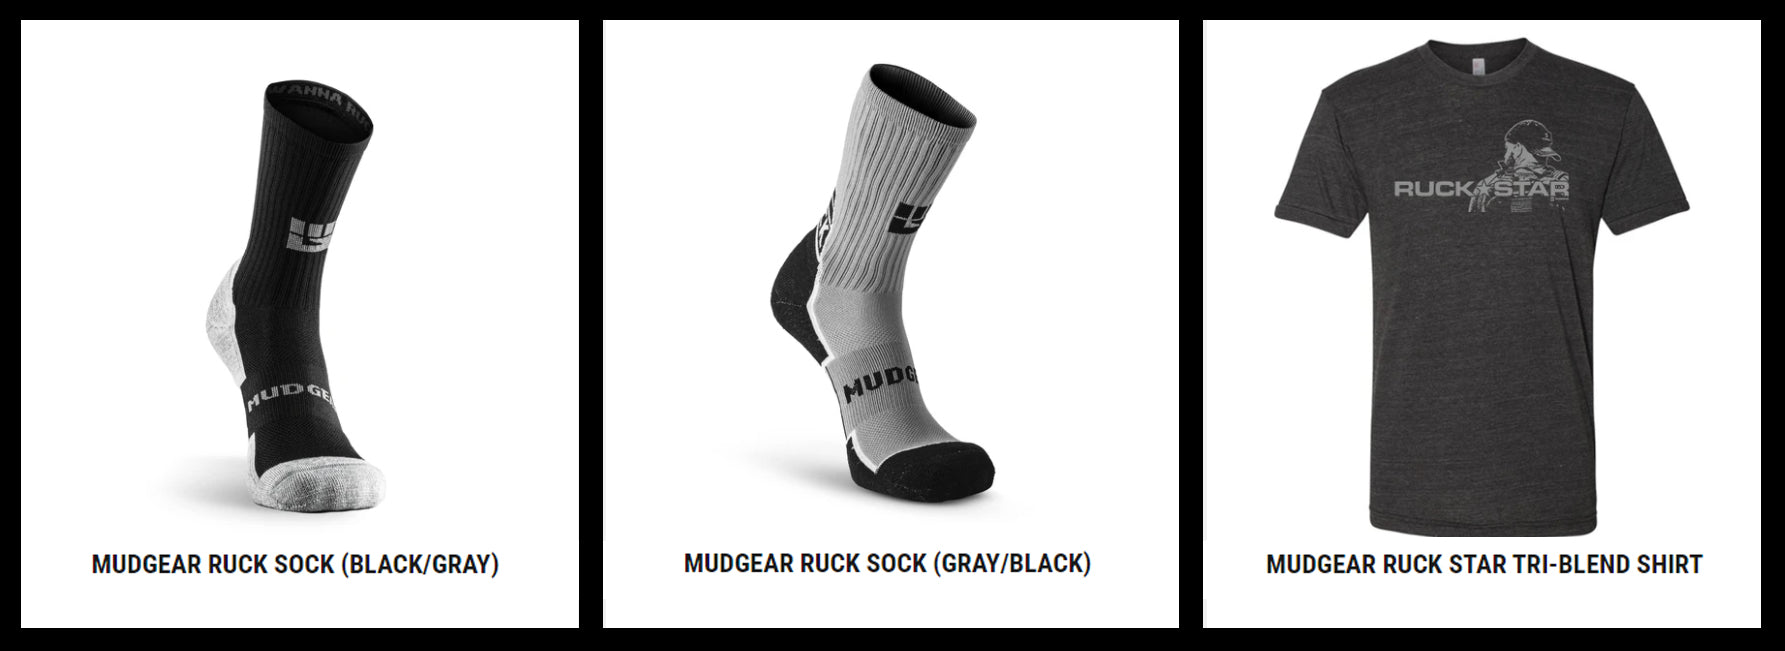 Essential MudGear Socks and Apparel for Rucking